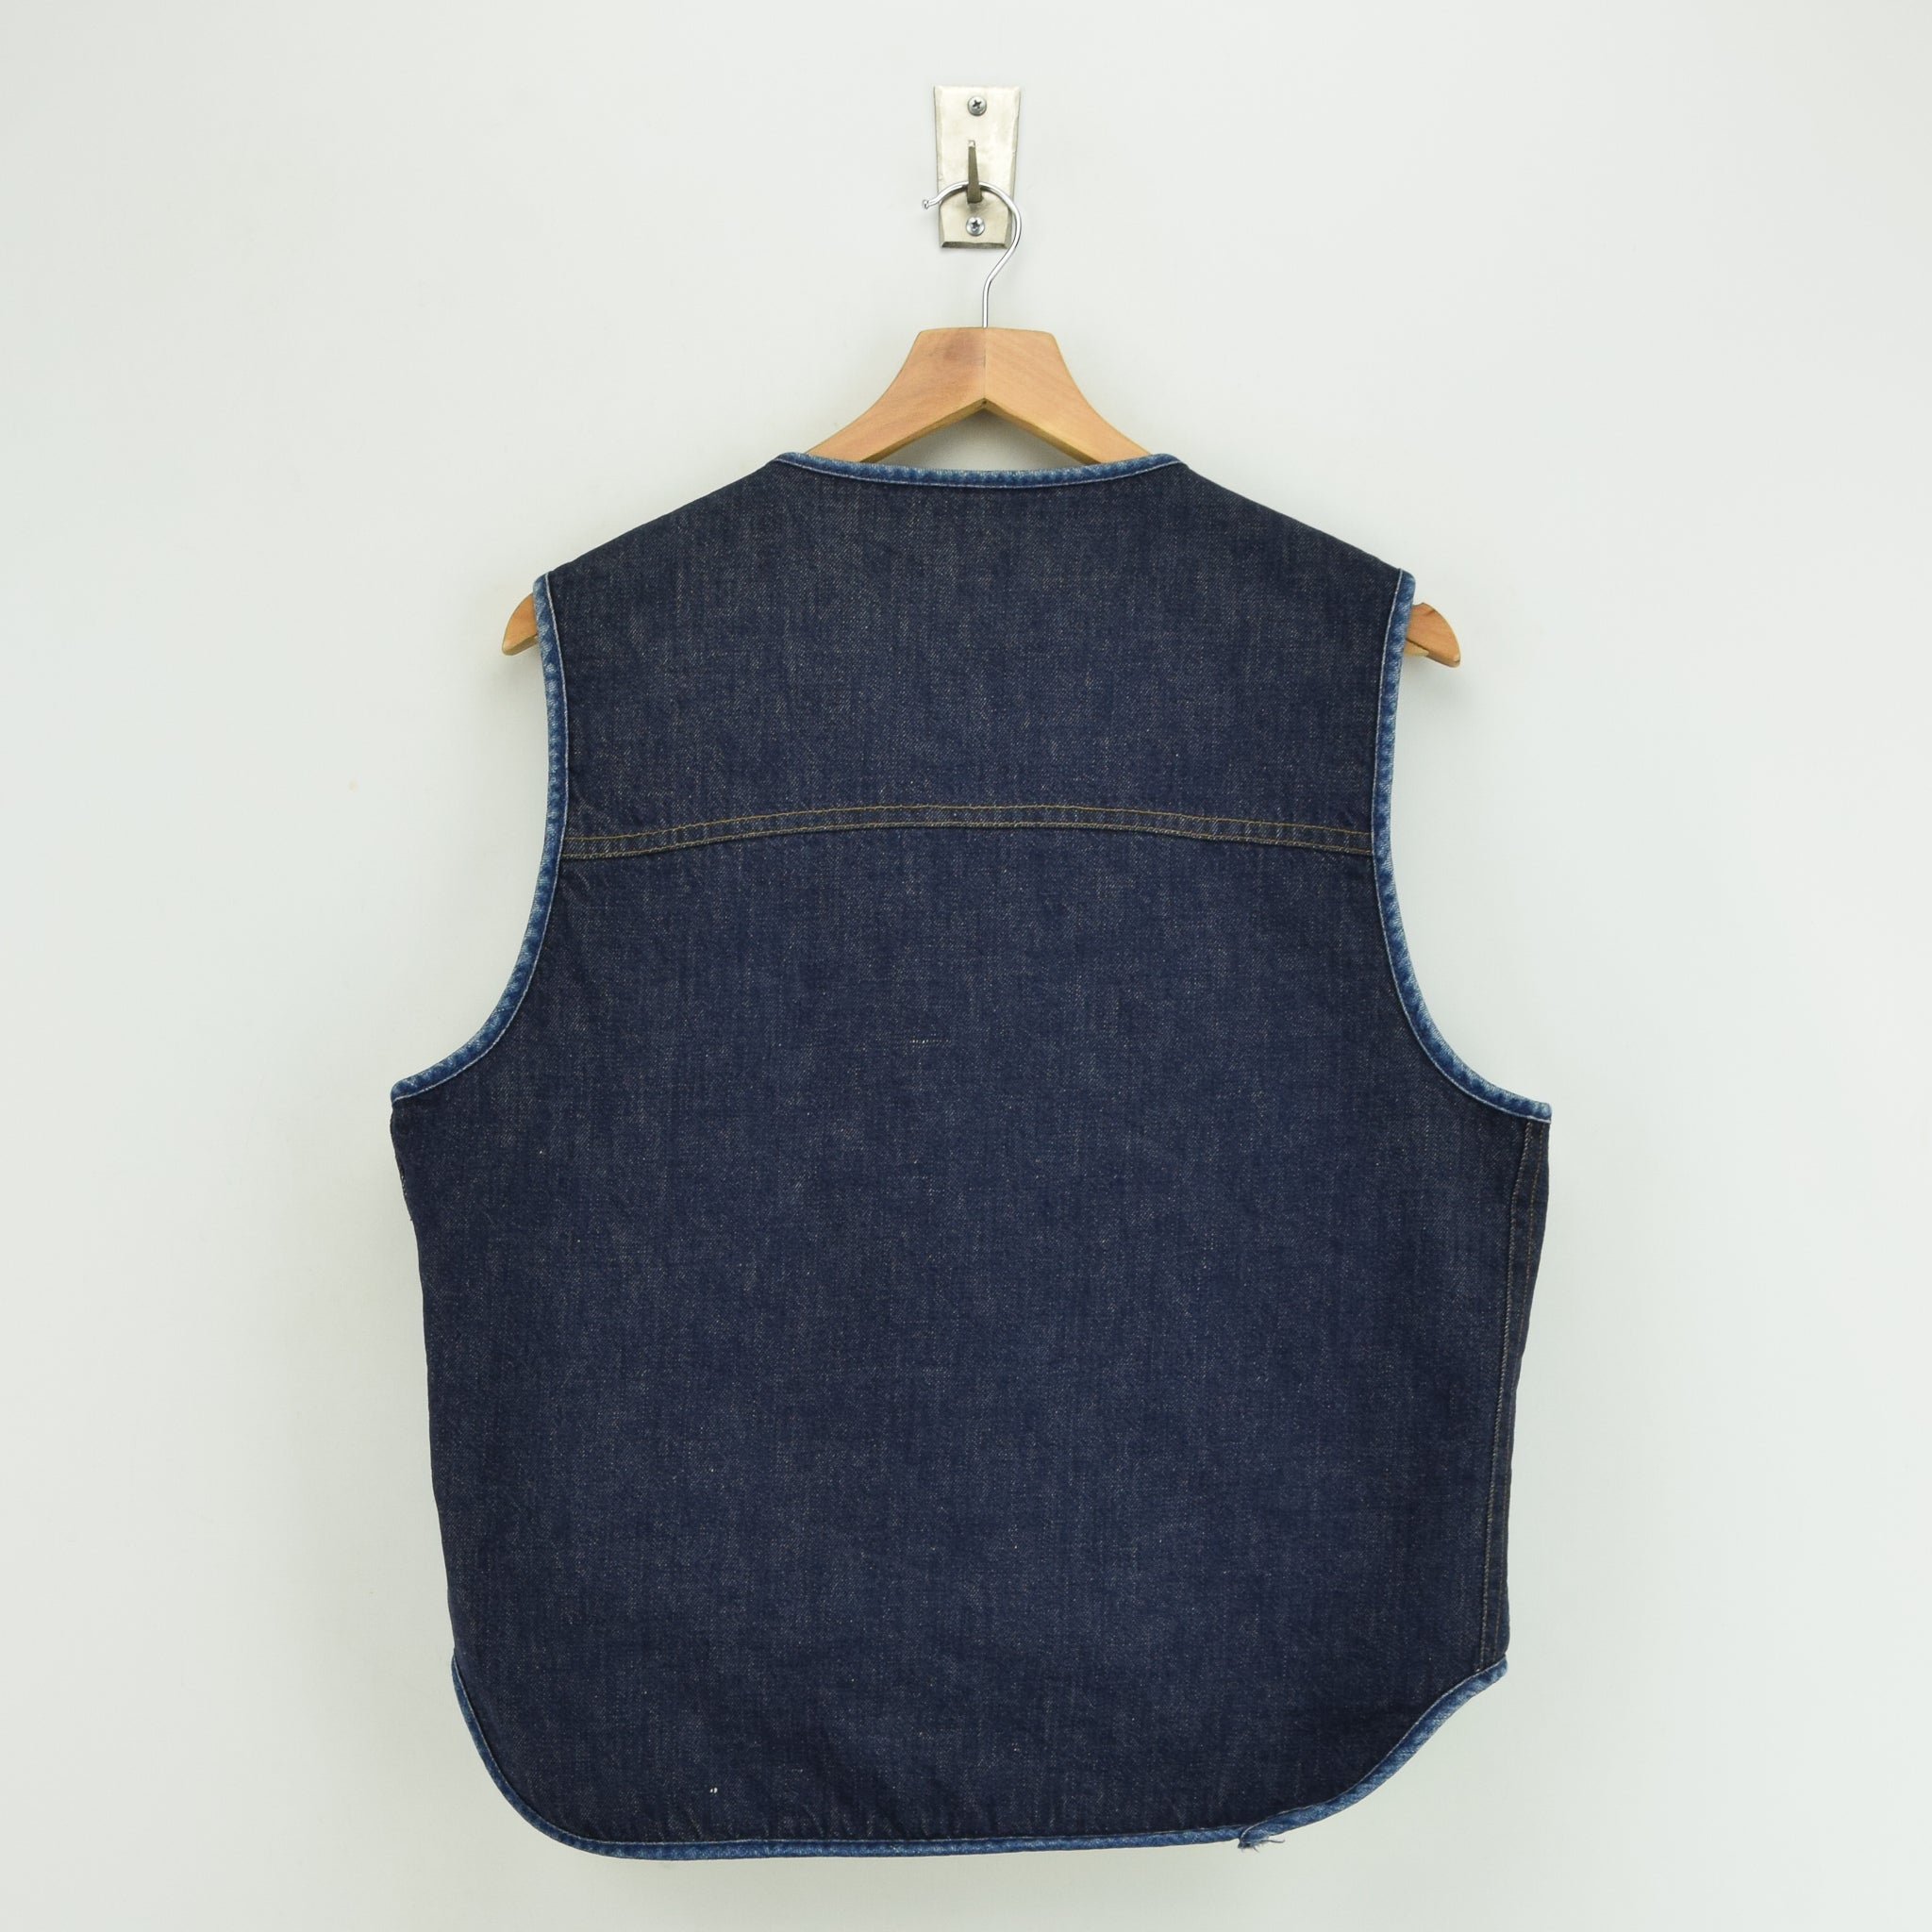 Vintage Sears Roebucks Blue Gilet Cotton Denim Waistcoat Vest Made in USA L back